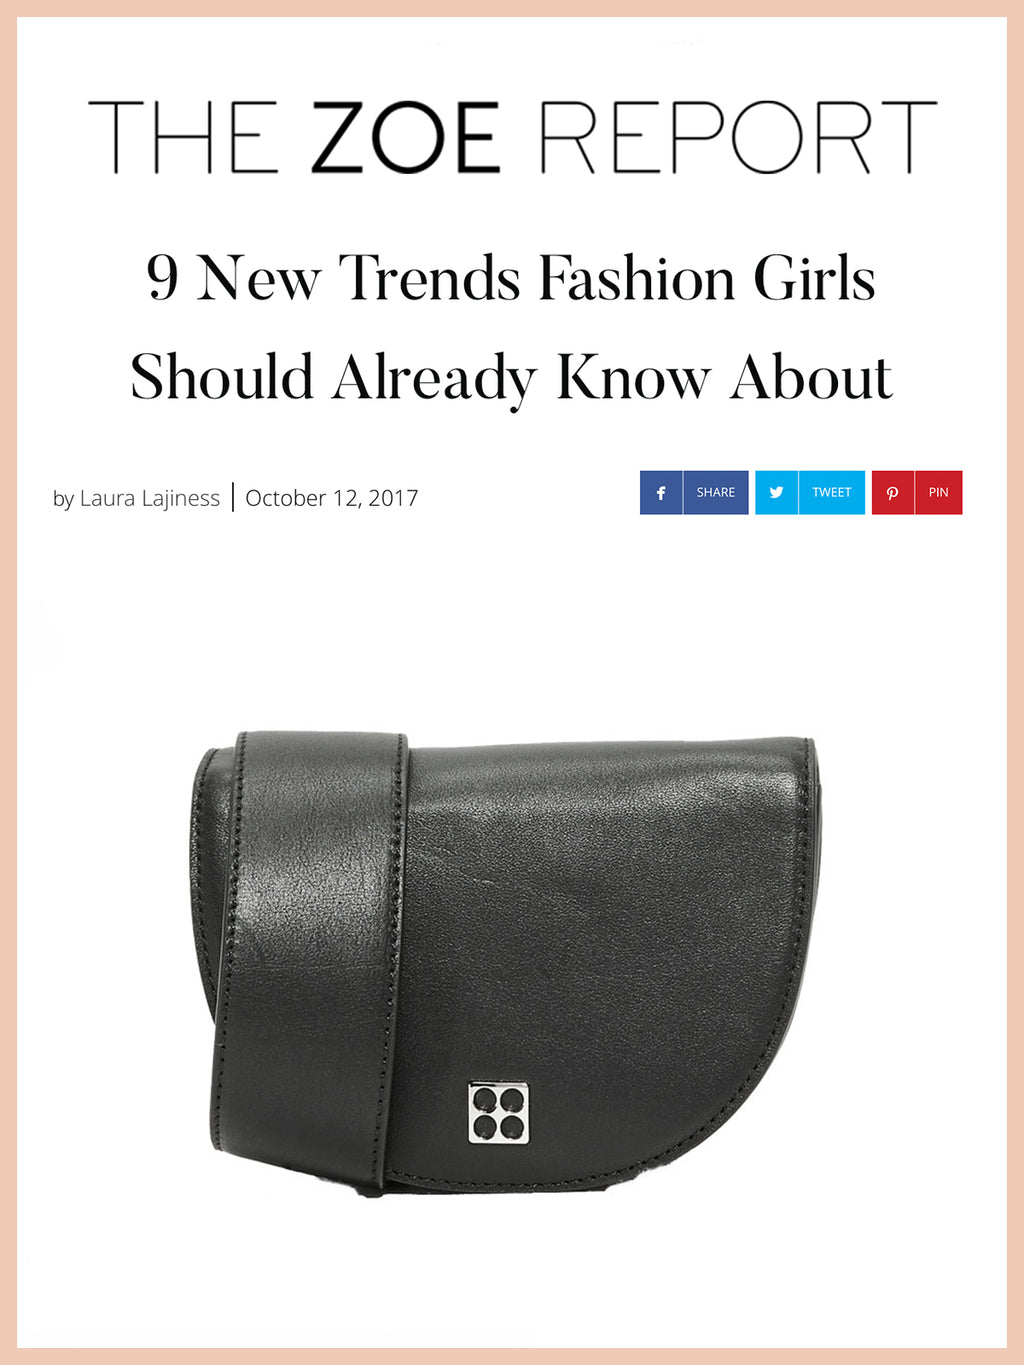 THE ZOE REPORT, 9 New Trends Fashion Girls Should Already Know About